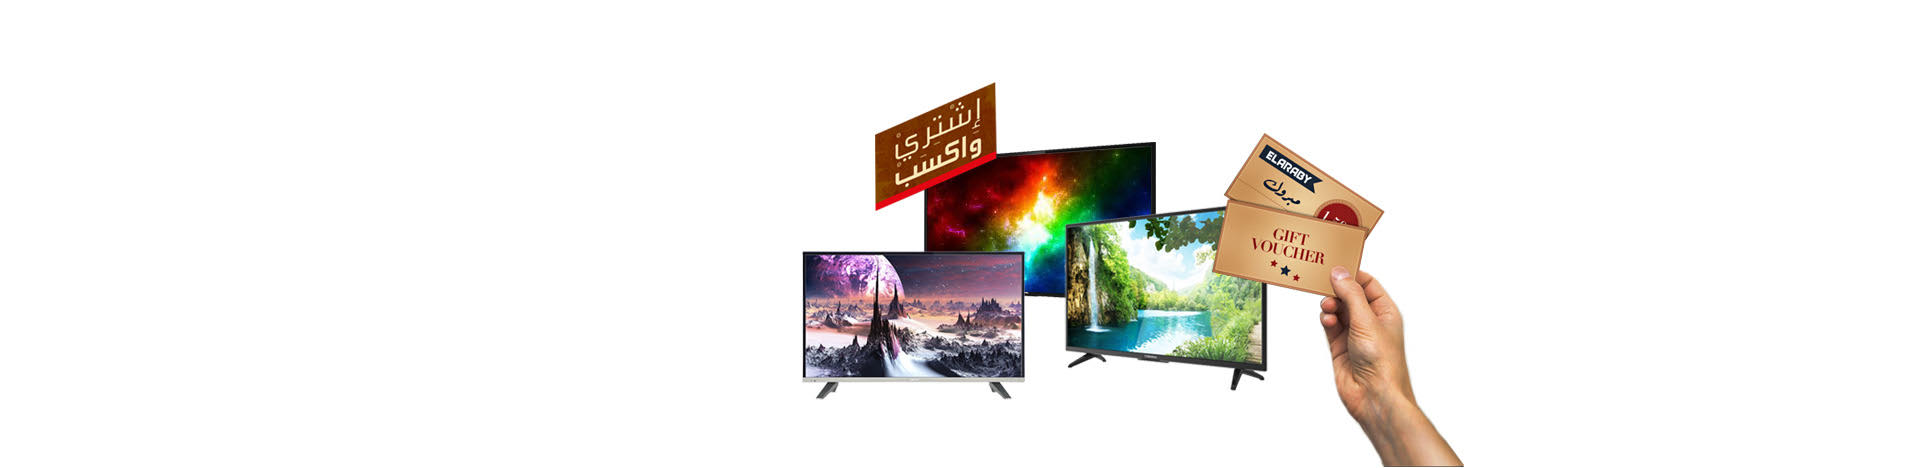 LED-TVs-40-inch-offers